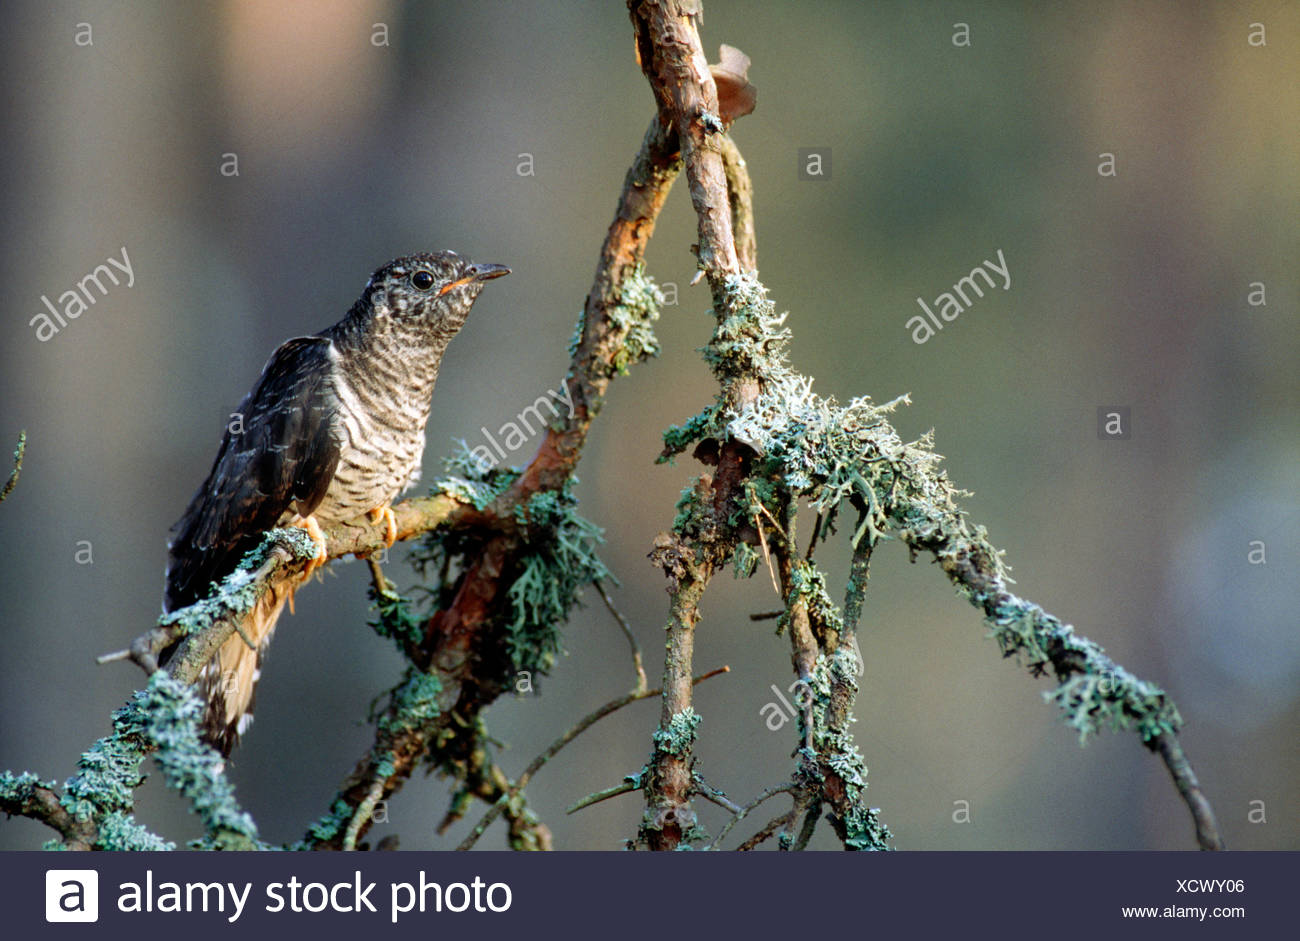 A young cuckoo, Finland. - Stock Image